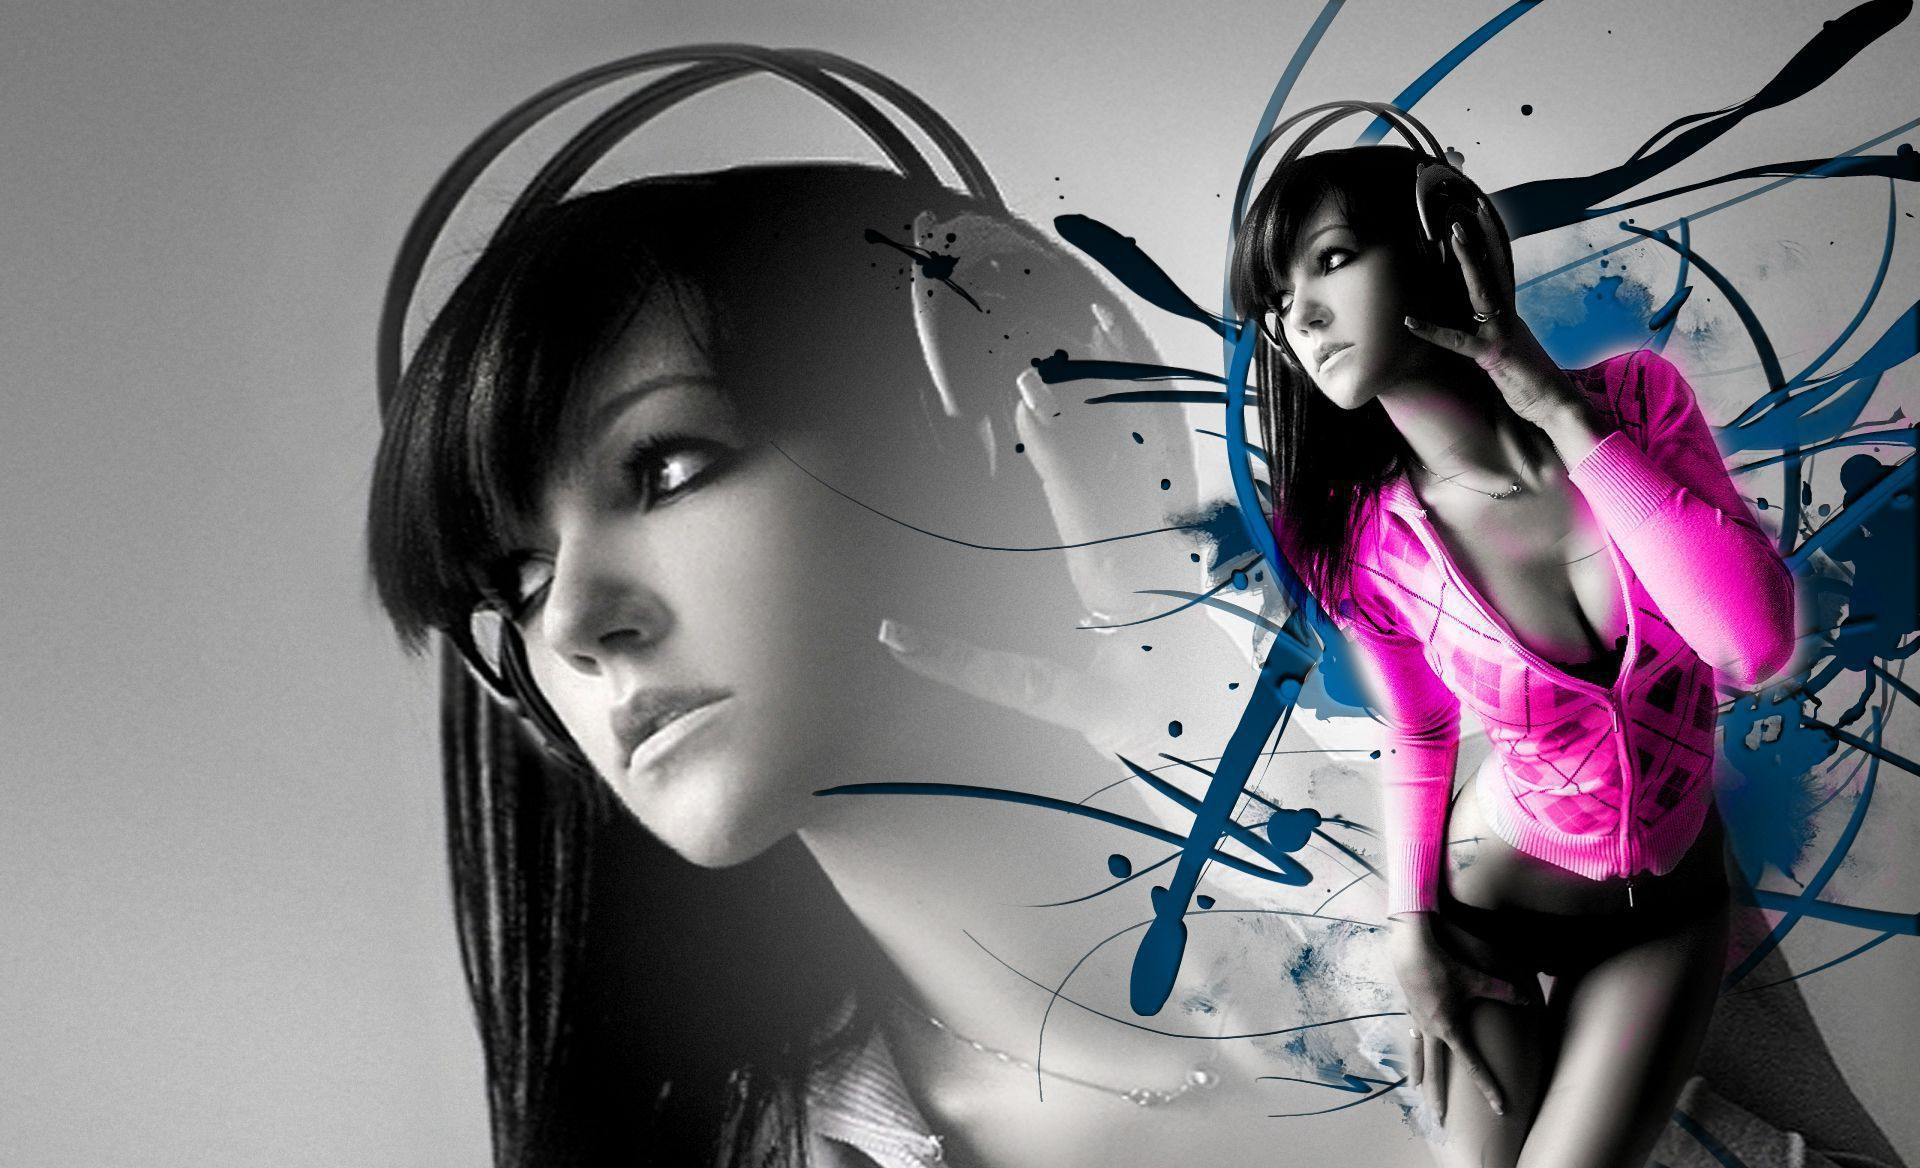 Abstract girls wallpapers backgrounds - Ladies wallpaper ...